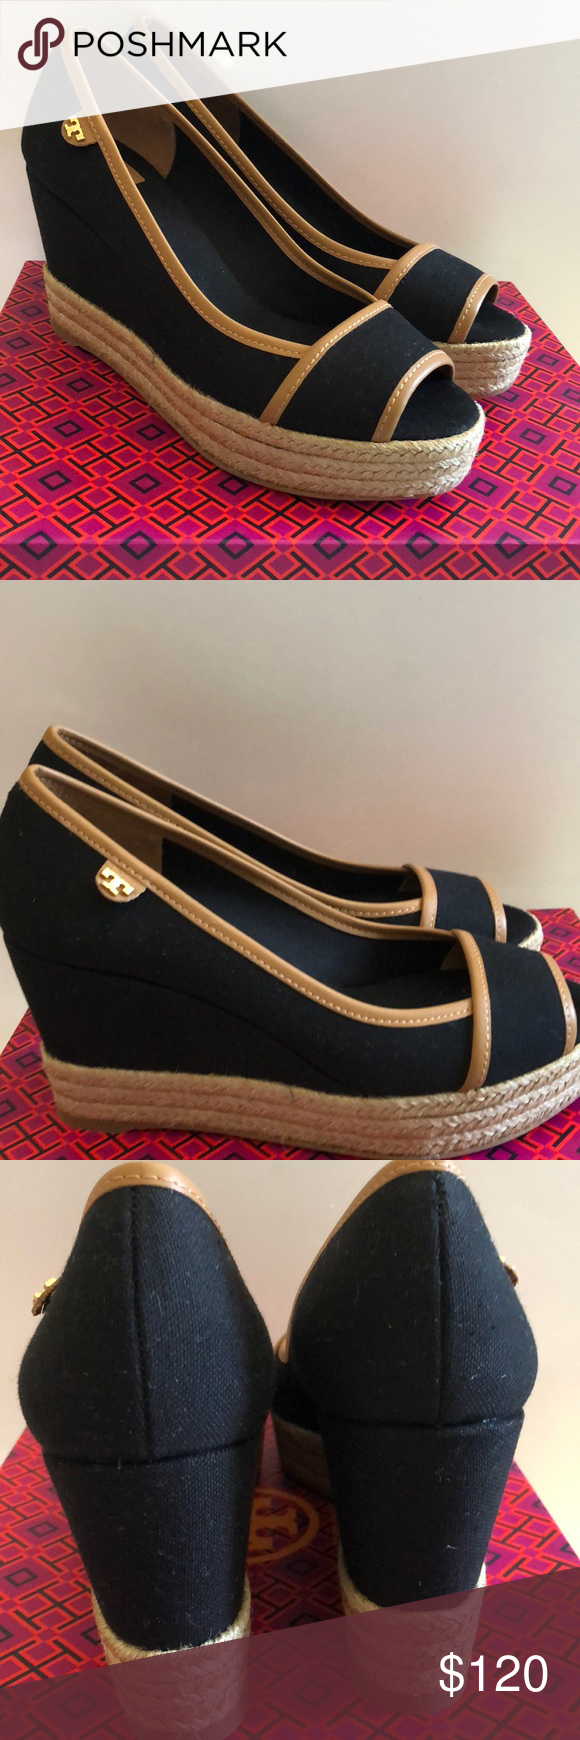 f298d73f145df2 Tory Burch Majorca logo wedge black tan Tory Burch Majorca logo wedge black  tan Tory Burch Shoes Wedges